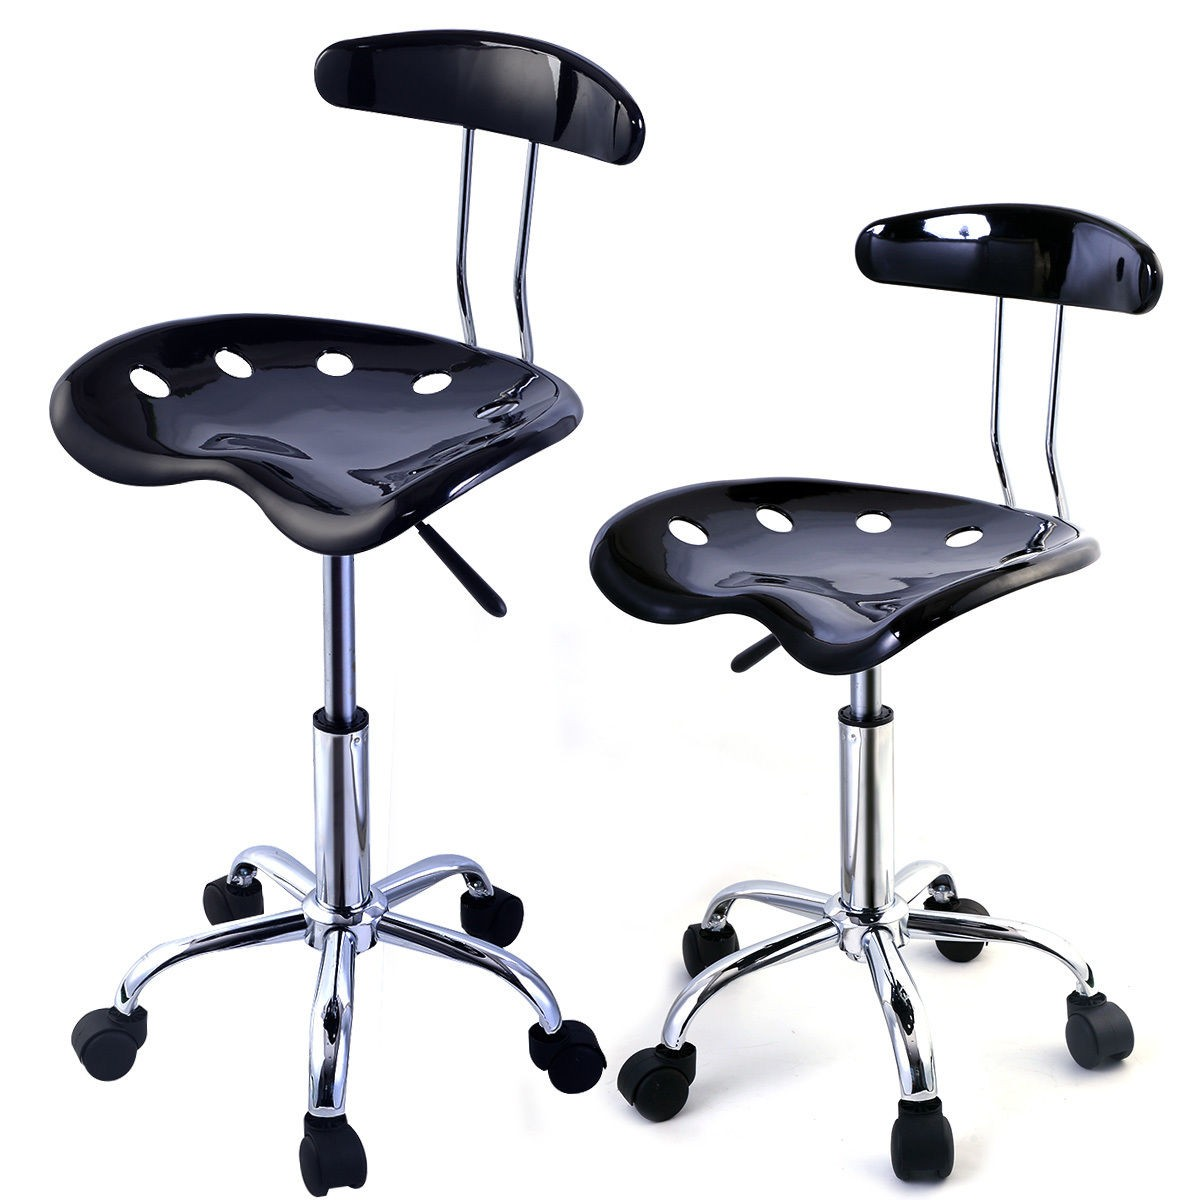 2PC ABS Tractor Seat Adjustable Bar Stools Swivel Chrome